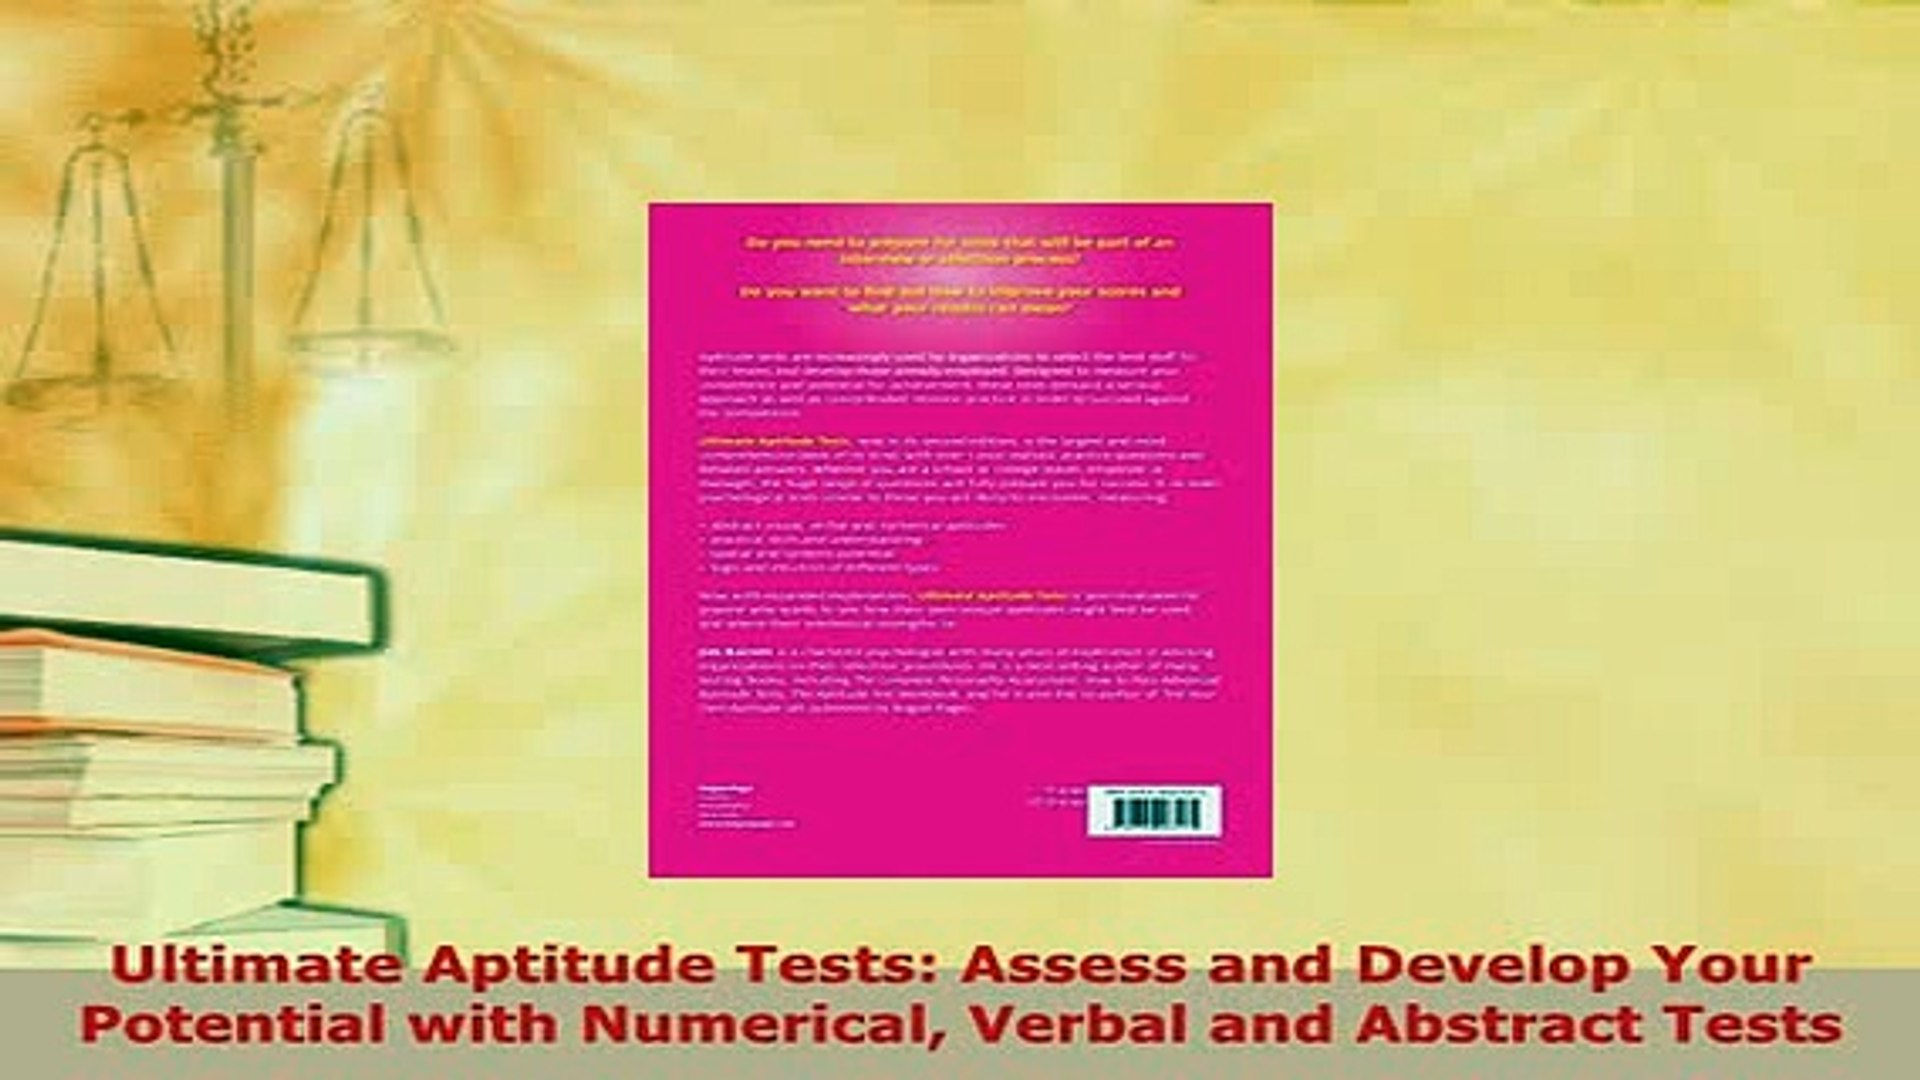 Verbal and Abstract Tests Assess and Develop Your Potential with Numerical Ultimate Aptitude Tests